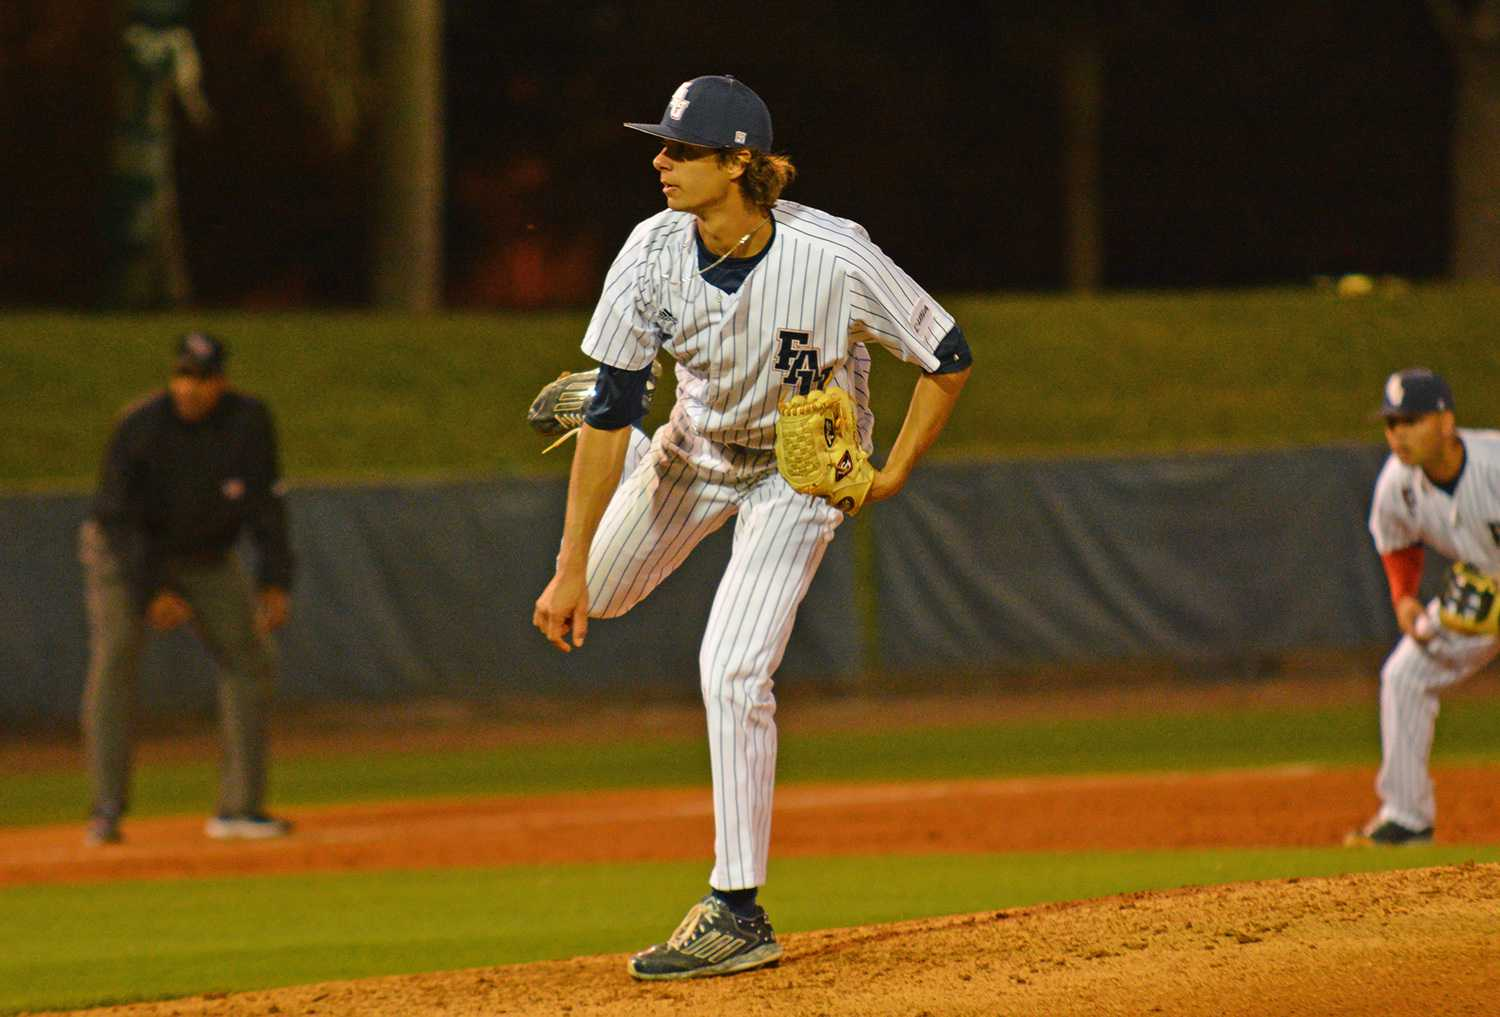 Friday night's starting pitcher Kyle Miller (17) only allowed five hits in five innings despite losing to Ohio State 8-2 to start the weekend series.